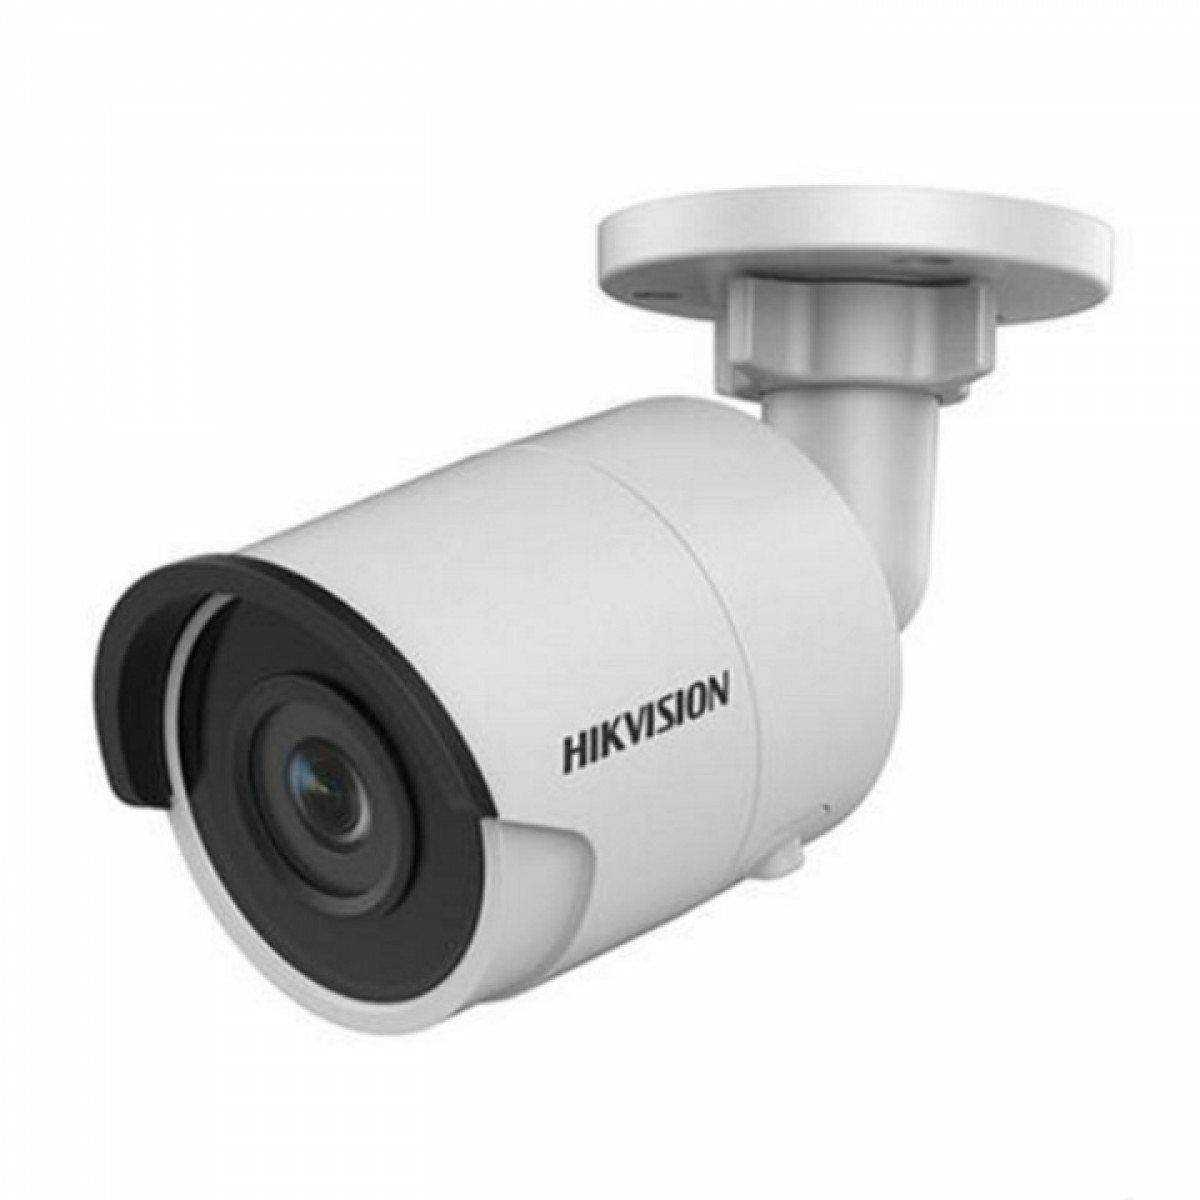 SICE Distributore Ufficiale  TELECAMERE IP BULLET OUTDOOR 5Mpx 4 mmEASYIP 3.0 (H.265+) FIXED LENS   DS-2CD2055FWD-I4